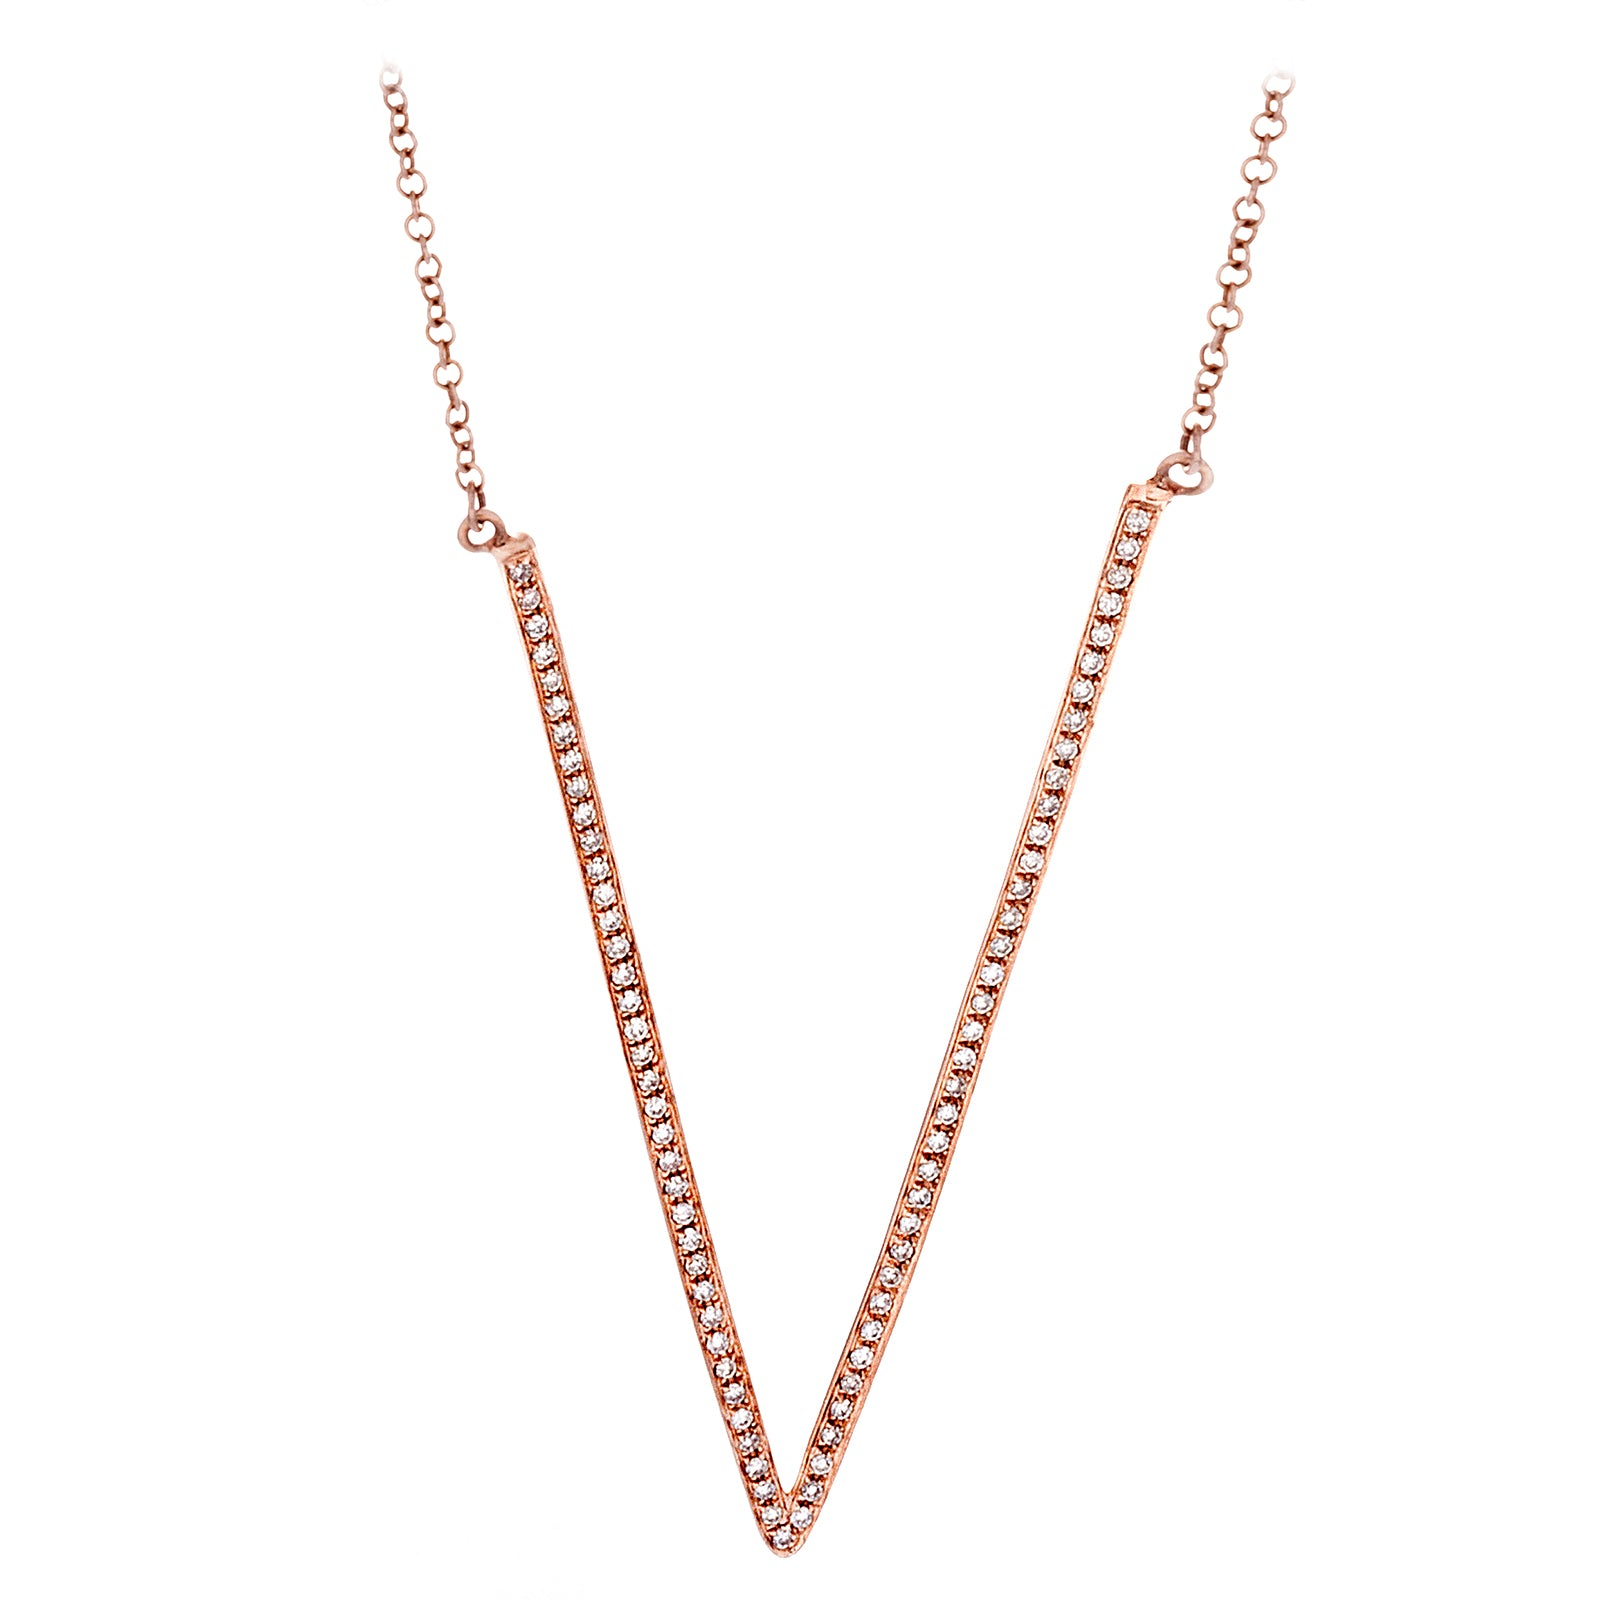 Diamonds & 14K Rose Gold V Necklace - SOLD